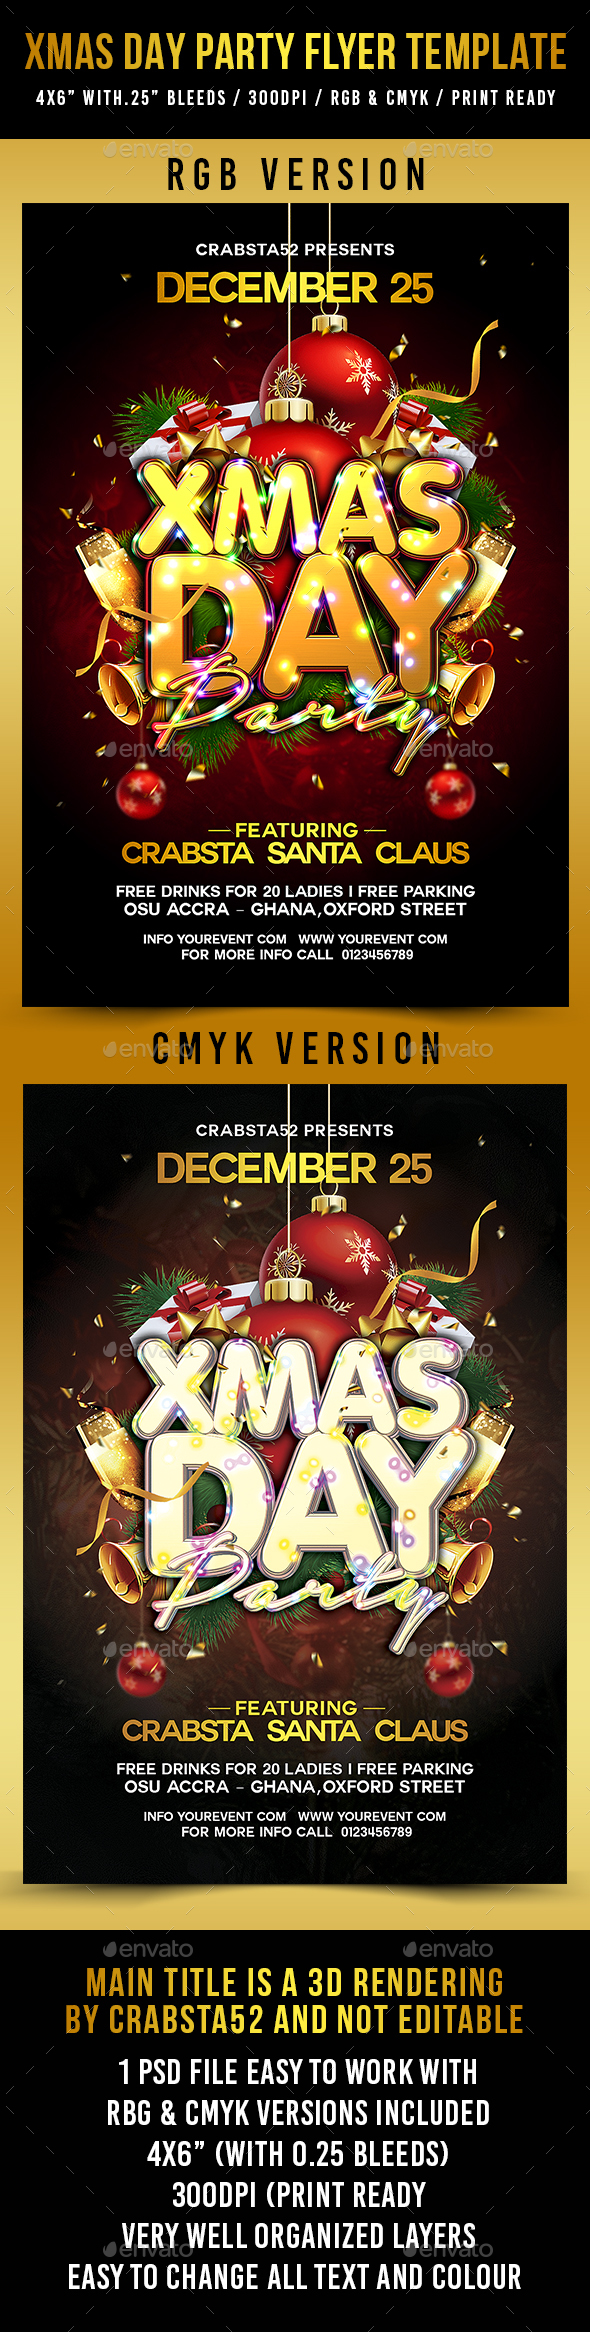 Xmas Day Party Flyer Template - Holidays Events